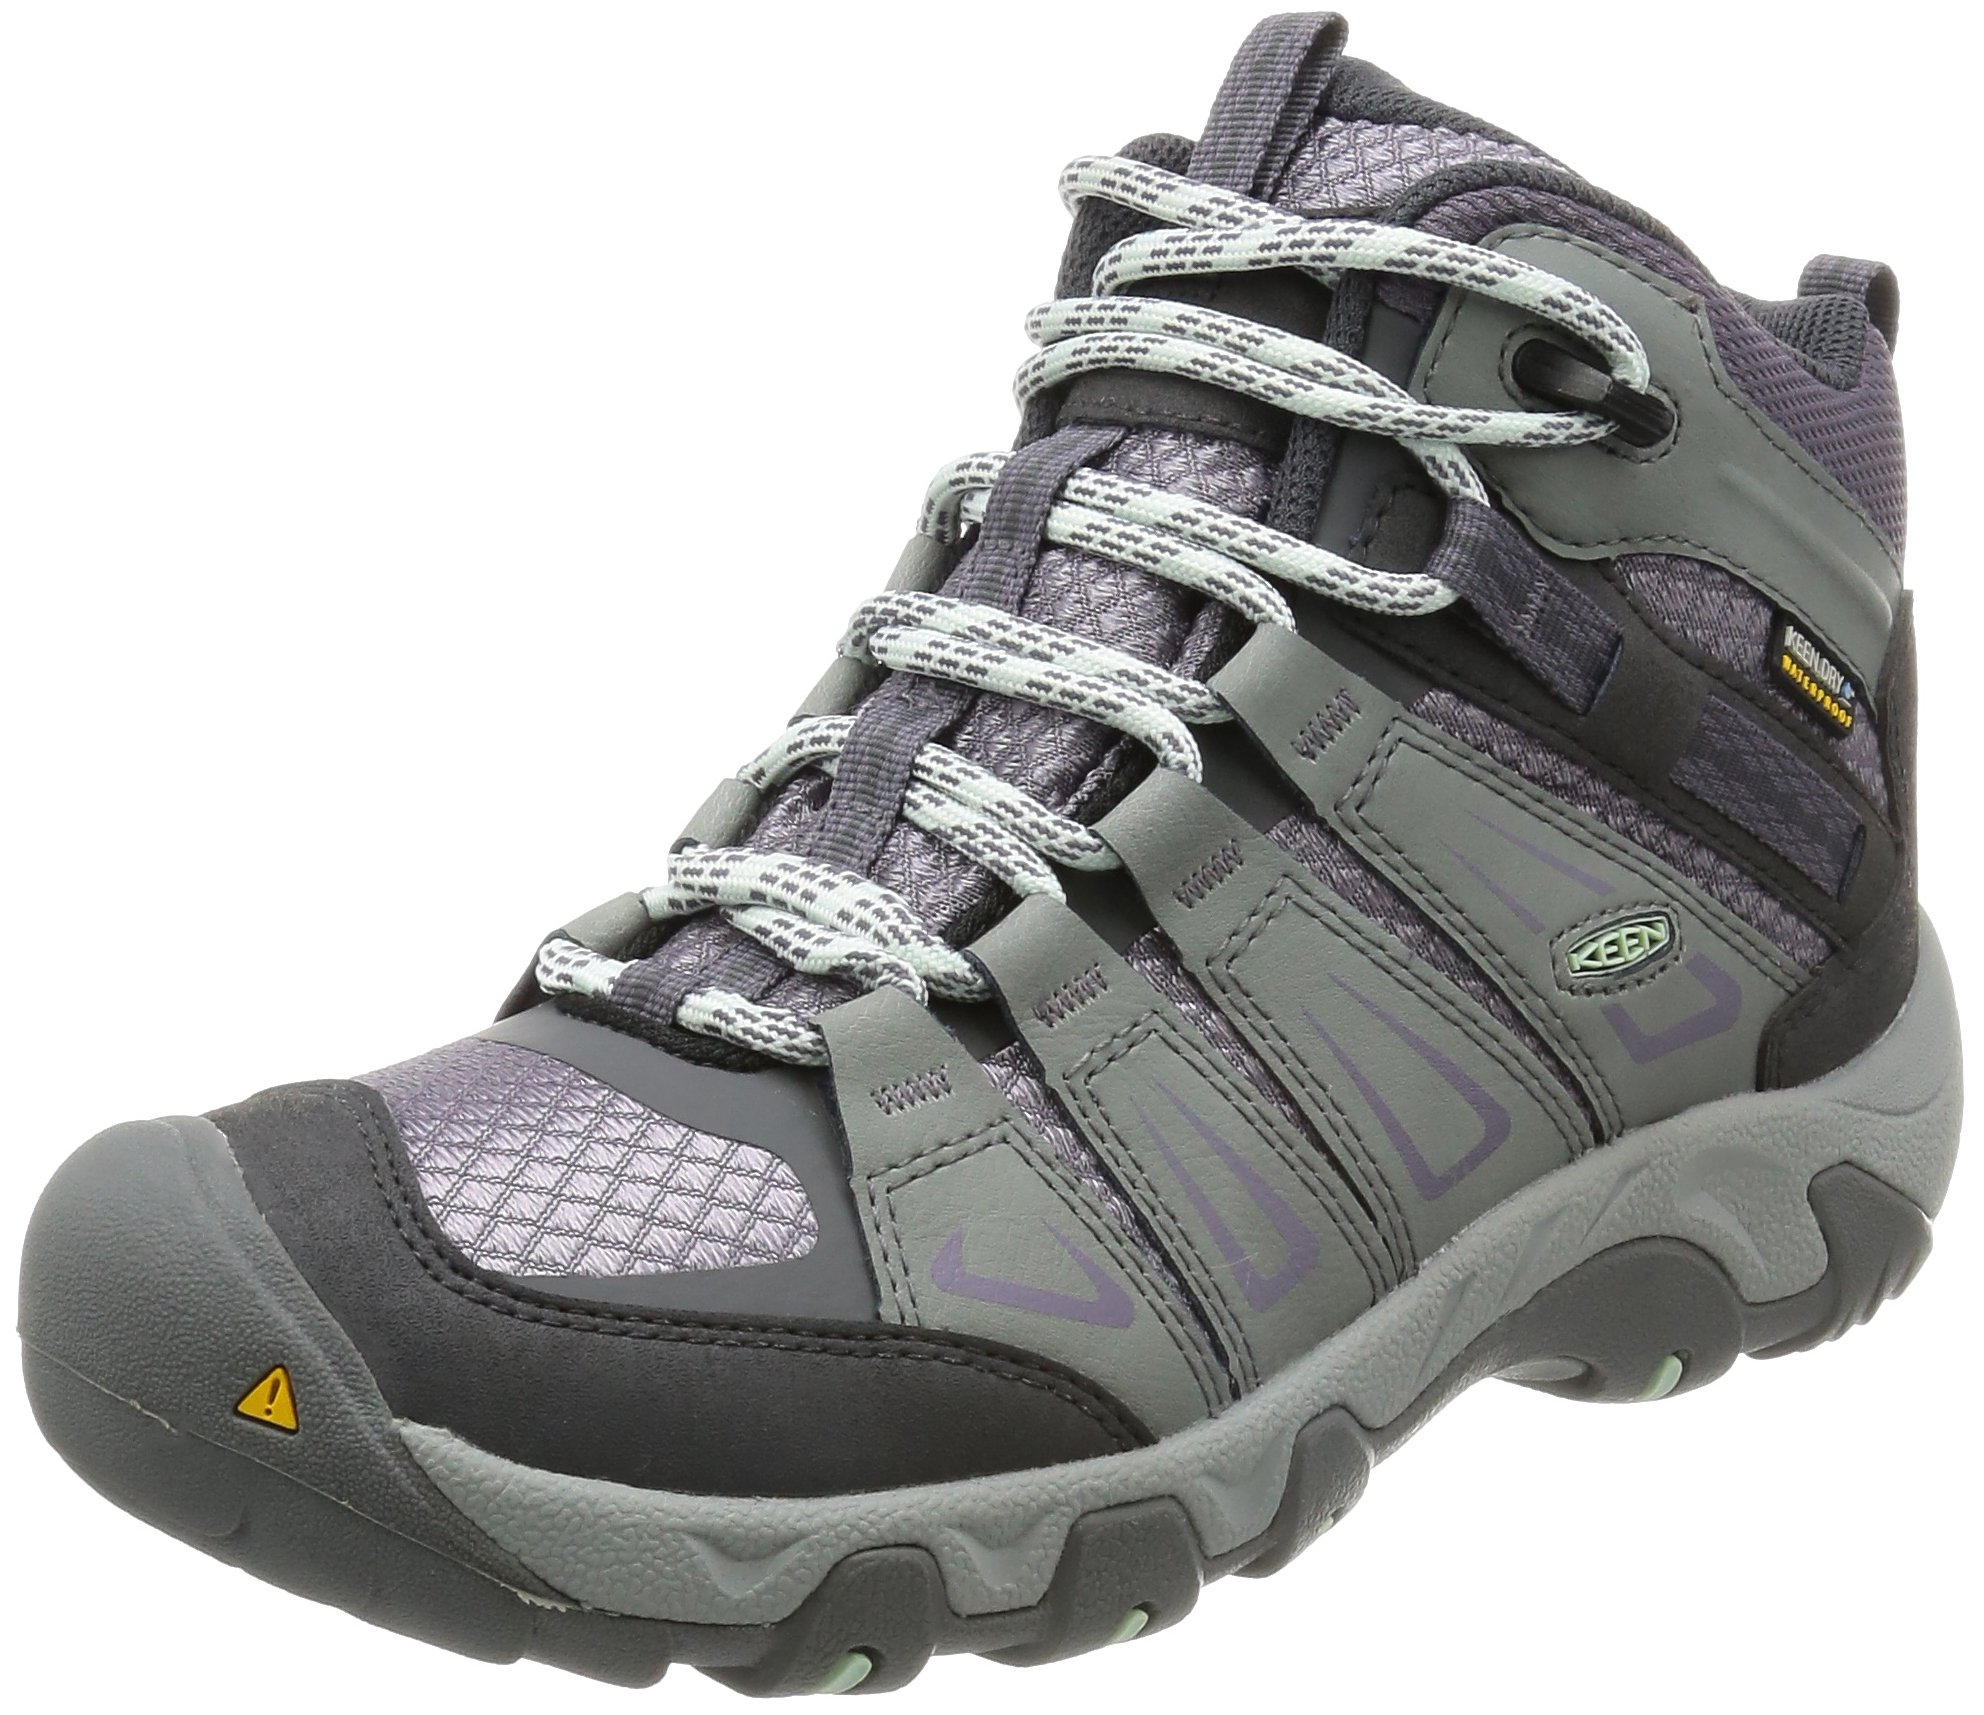 KEEN Women's Oakridge Mid Waterproof Boot, Gray/Shark, 11 M US by KEEN